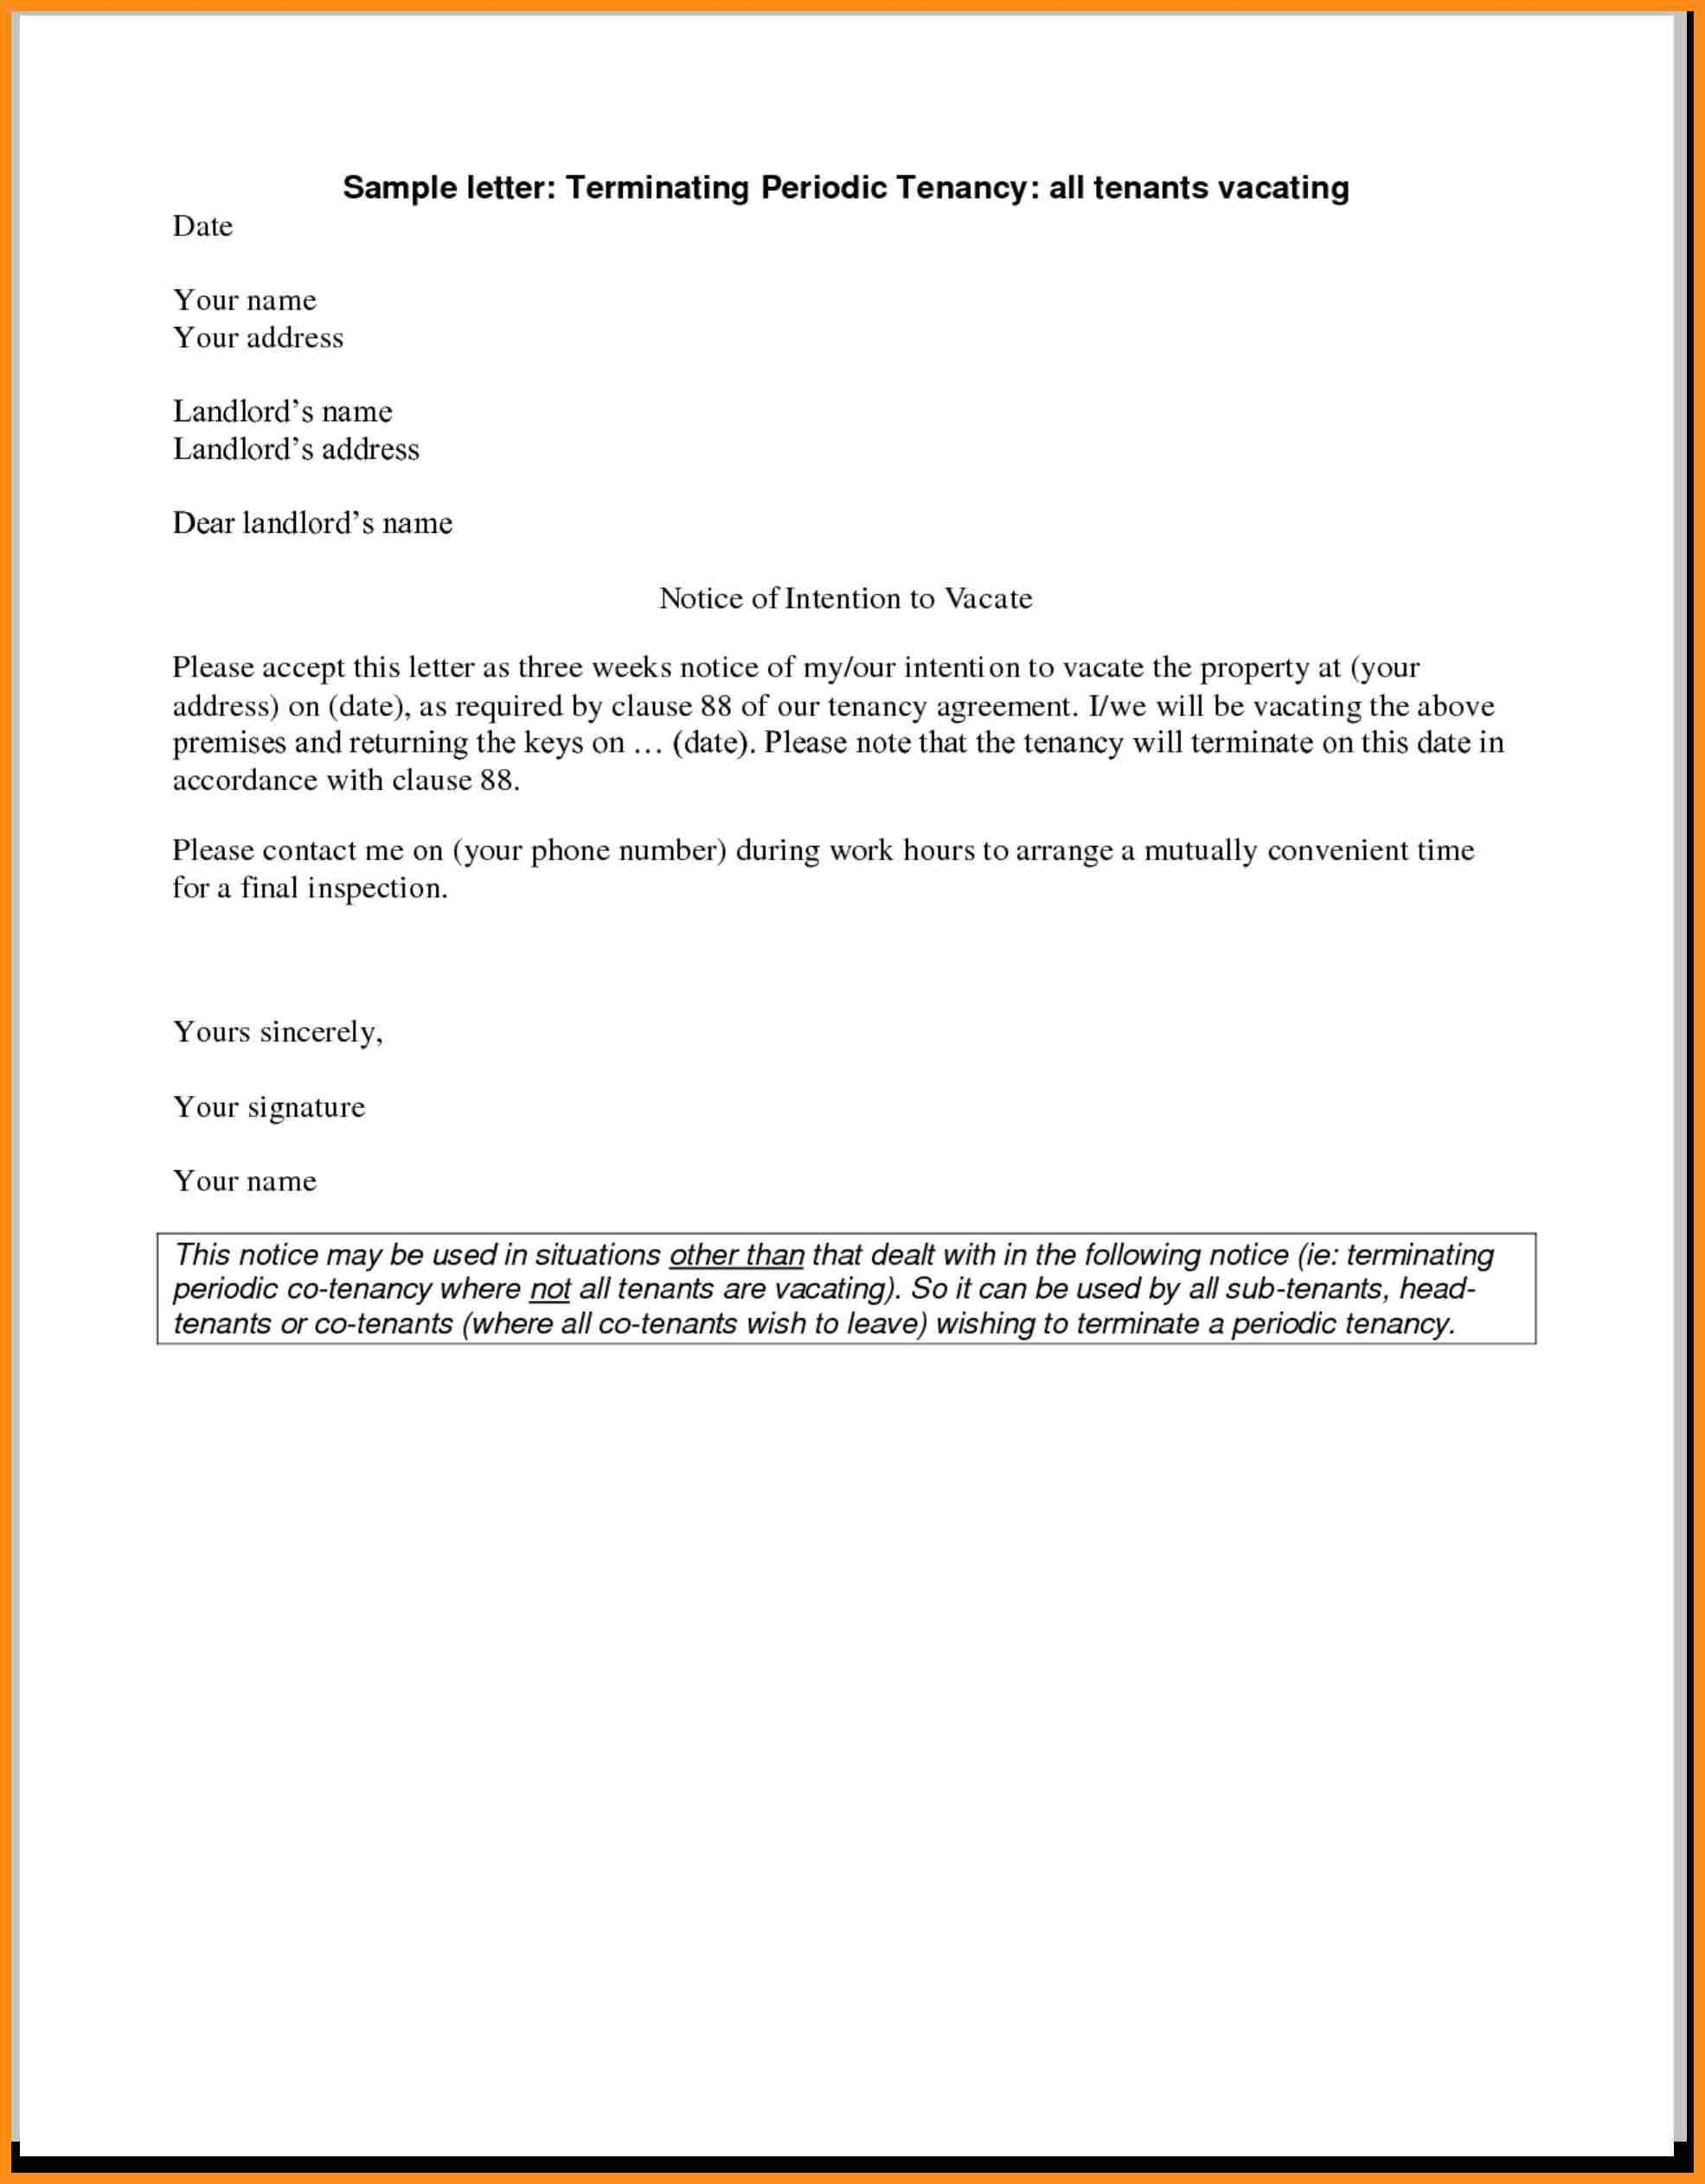 landlord property inspection letter template example-Property Inspection Letter to Tenant Uk Archives New Property Inspection Letter Template Uk Best 28 Sublet 9-a